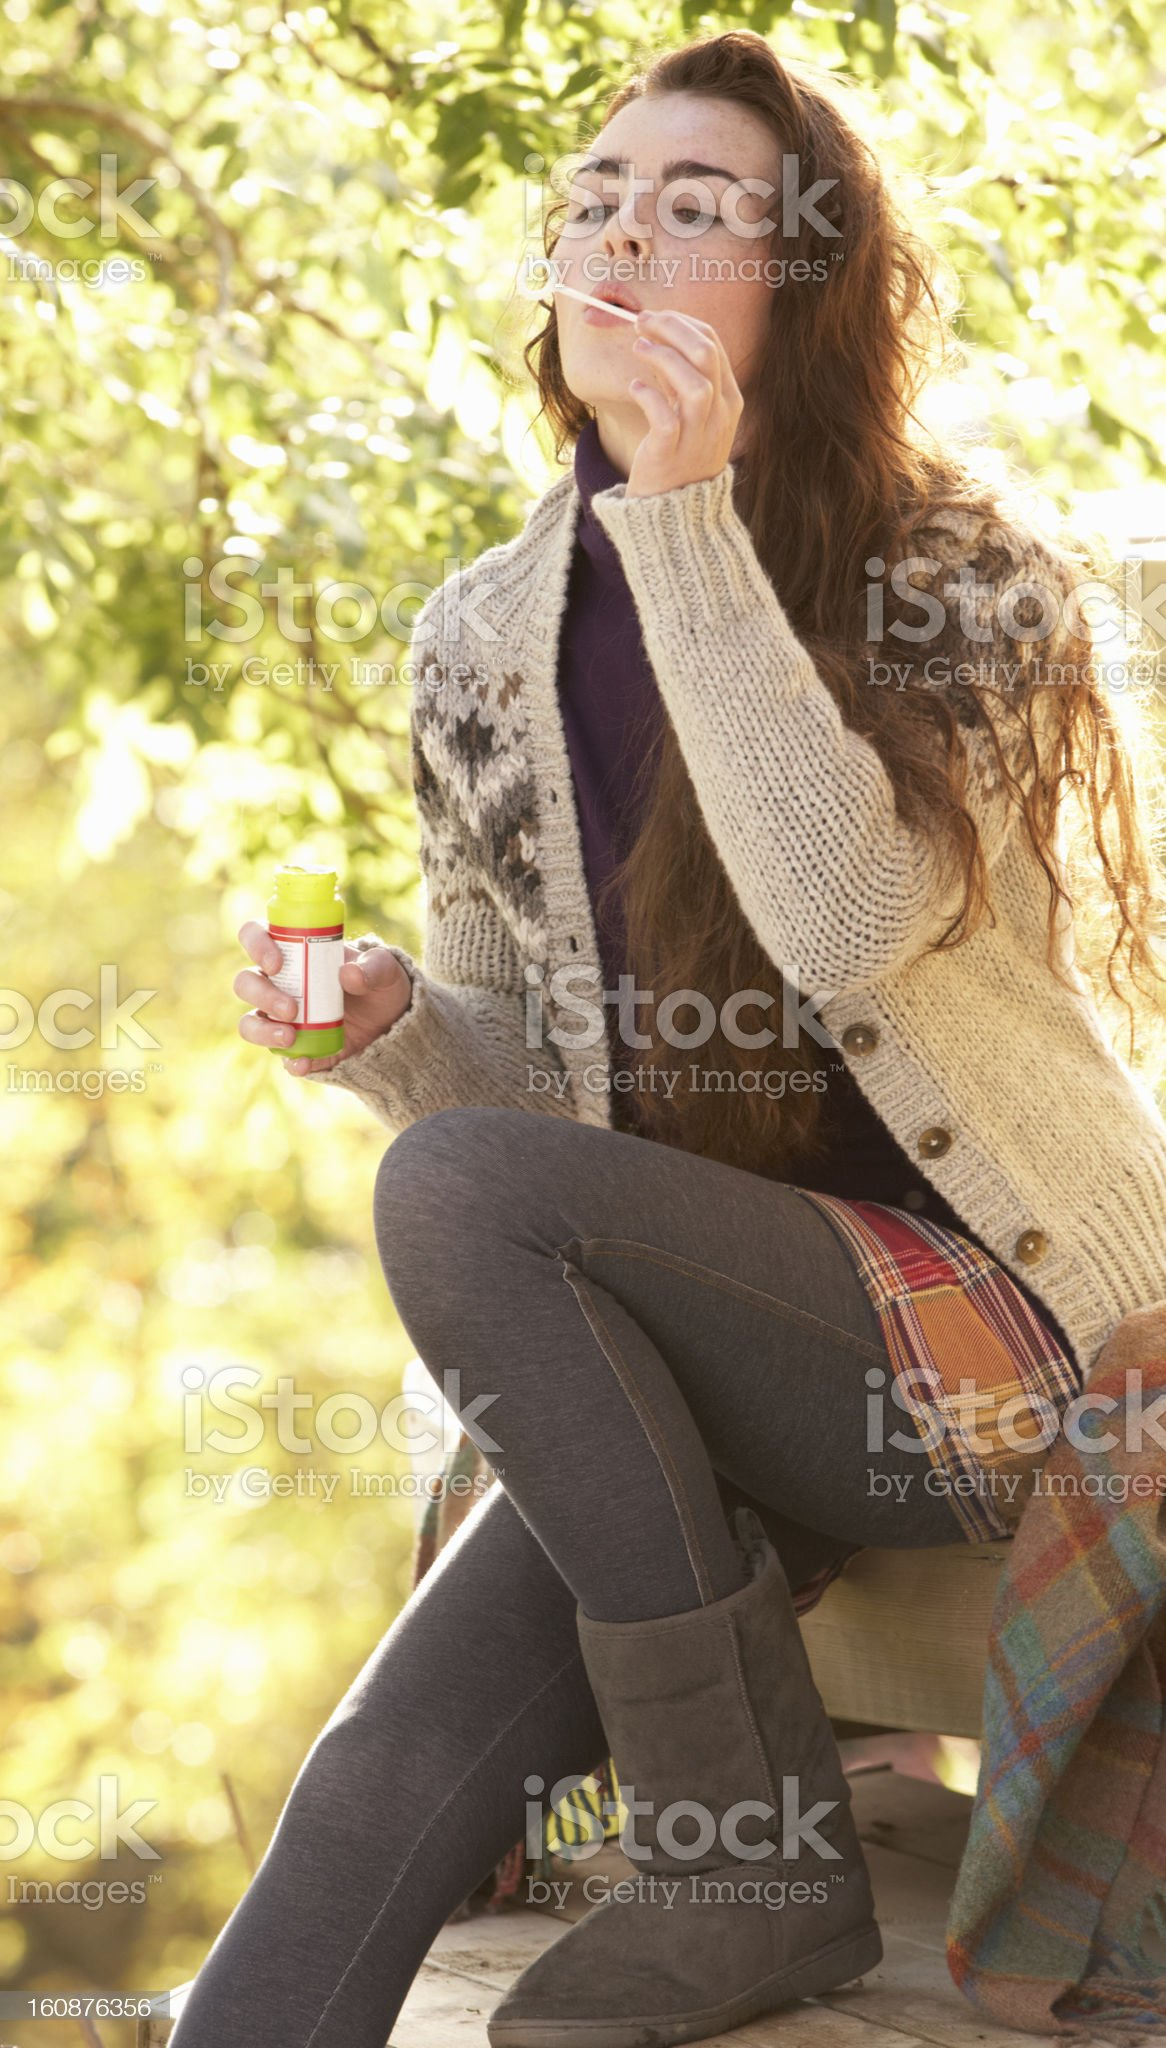 Portrait Of Beautiful Teenage Girl Outdoors In Autumn Landscape royalty-free stock photo